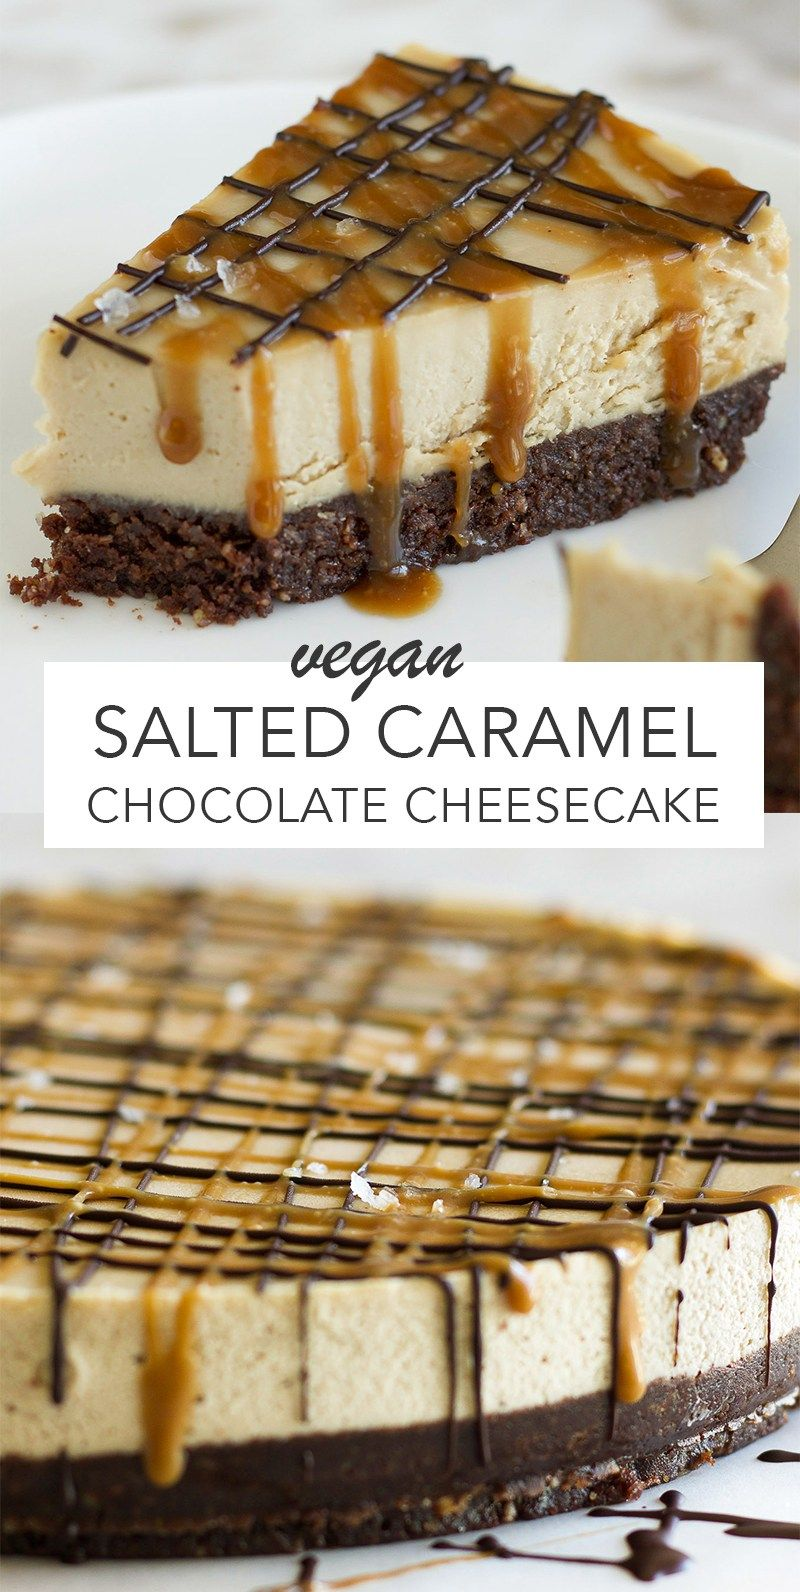 Vegan Salted Caramel Chocolate Cheesecake #cakesanddeserts